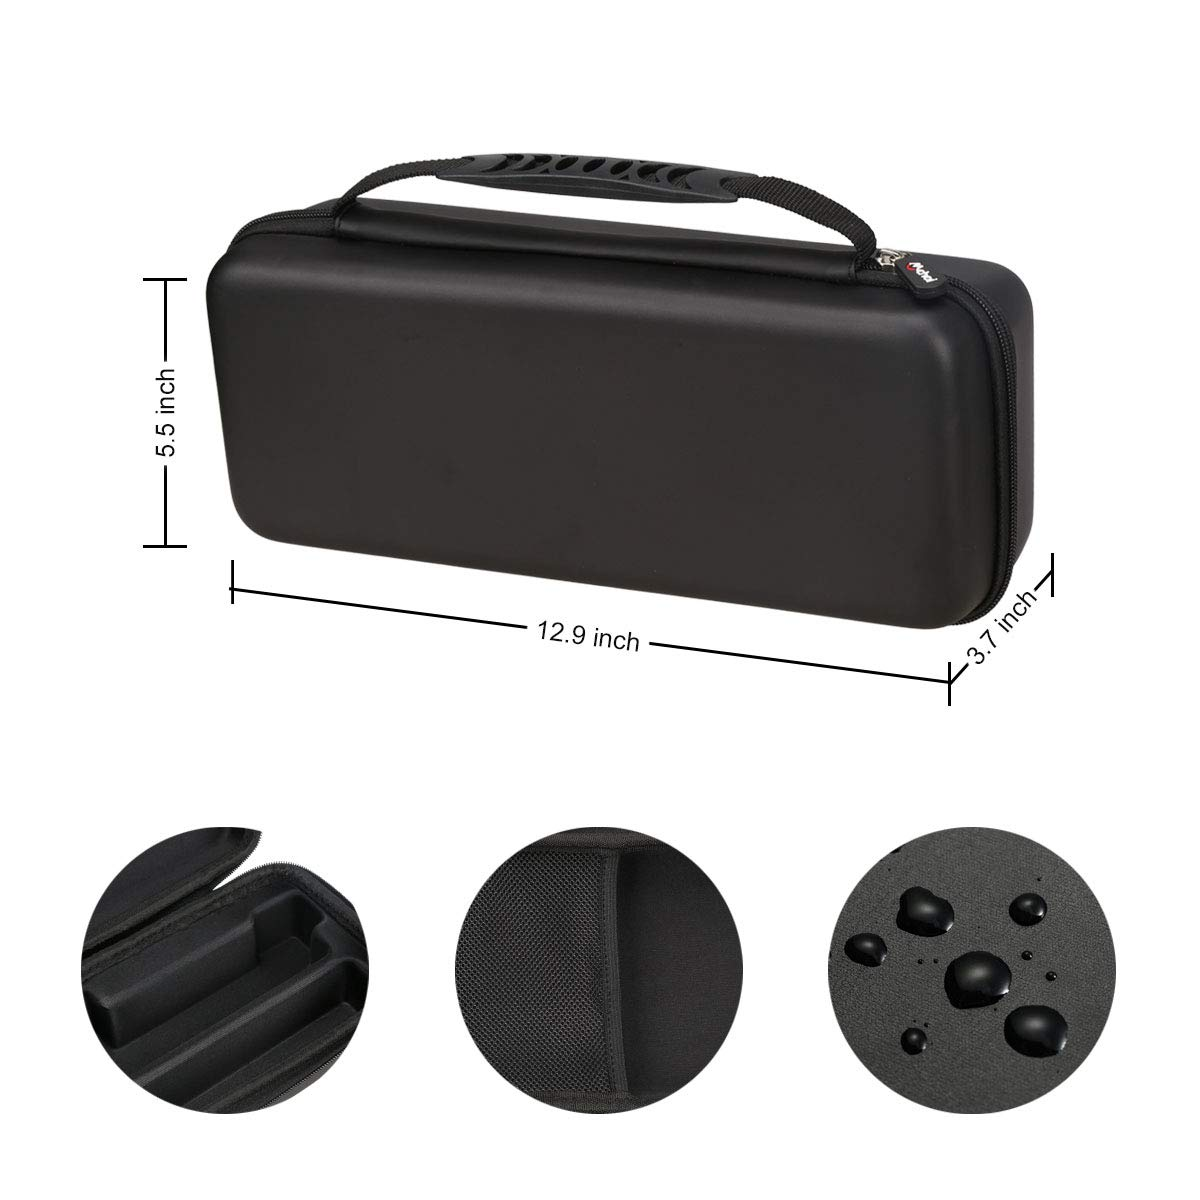 Mchoi Hard Portable Case for NOCO Boost Plus GB40 Jump Starter Black